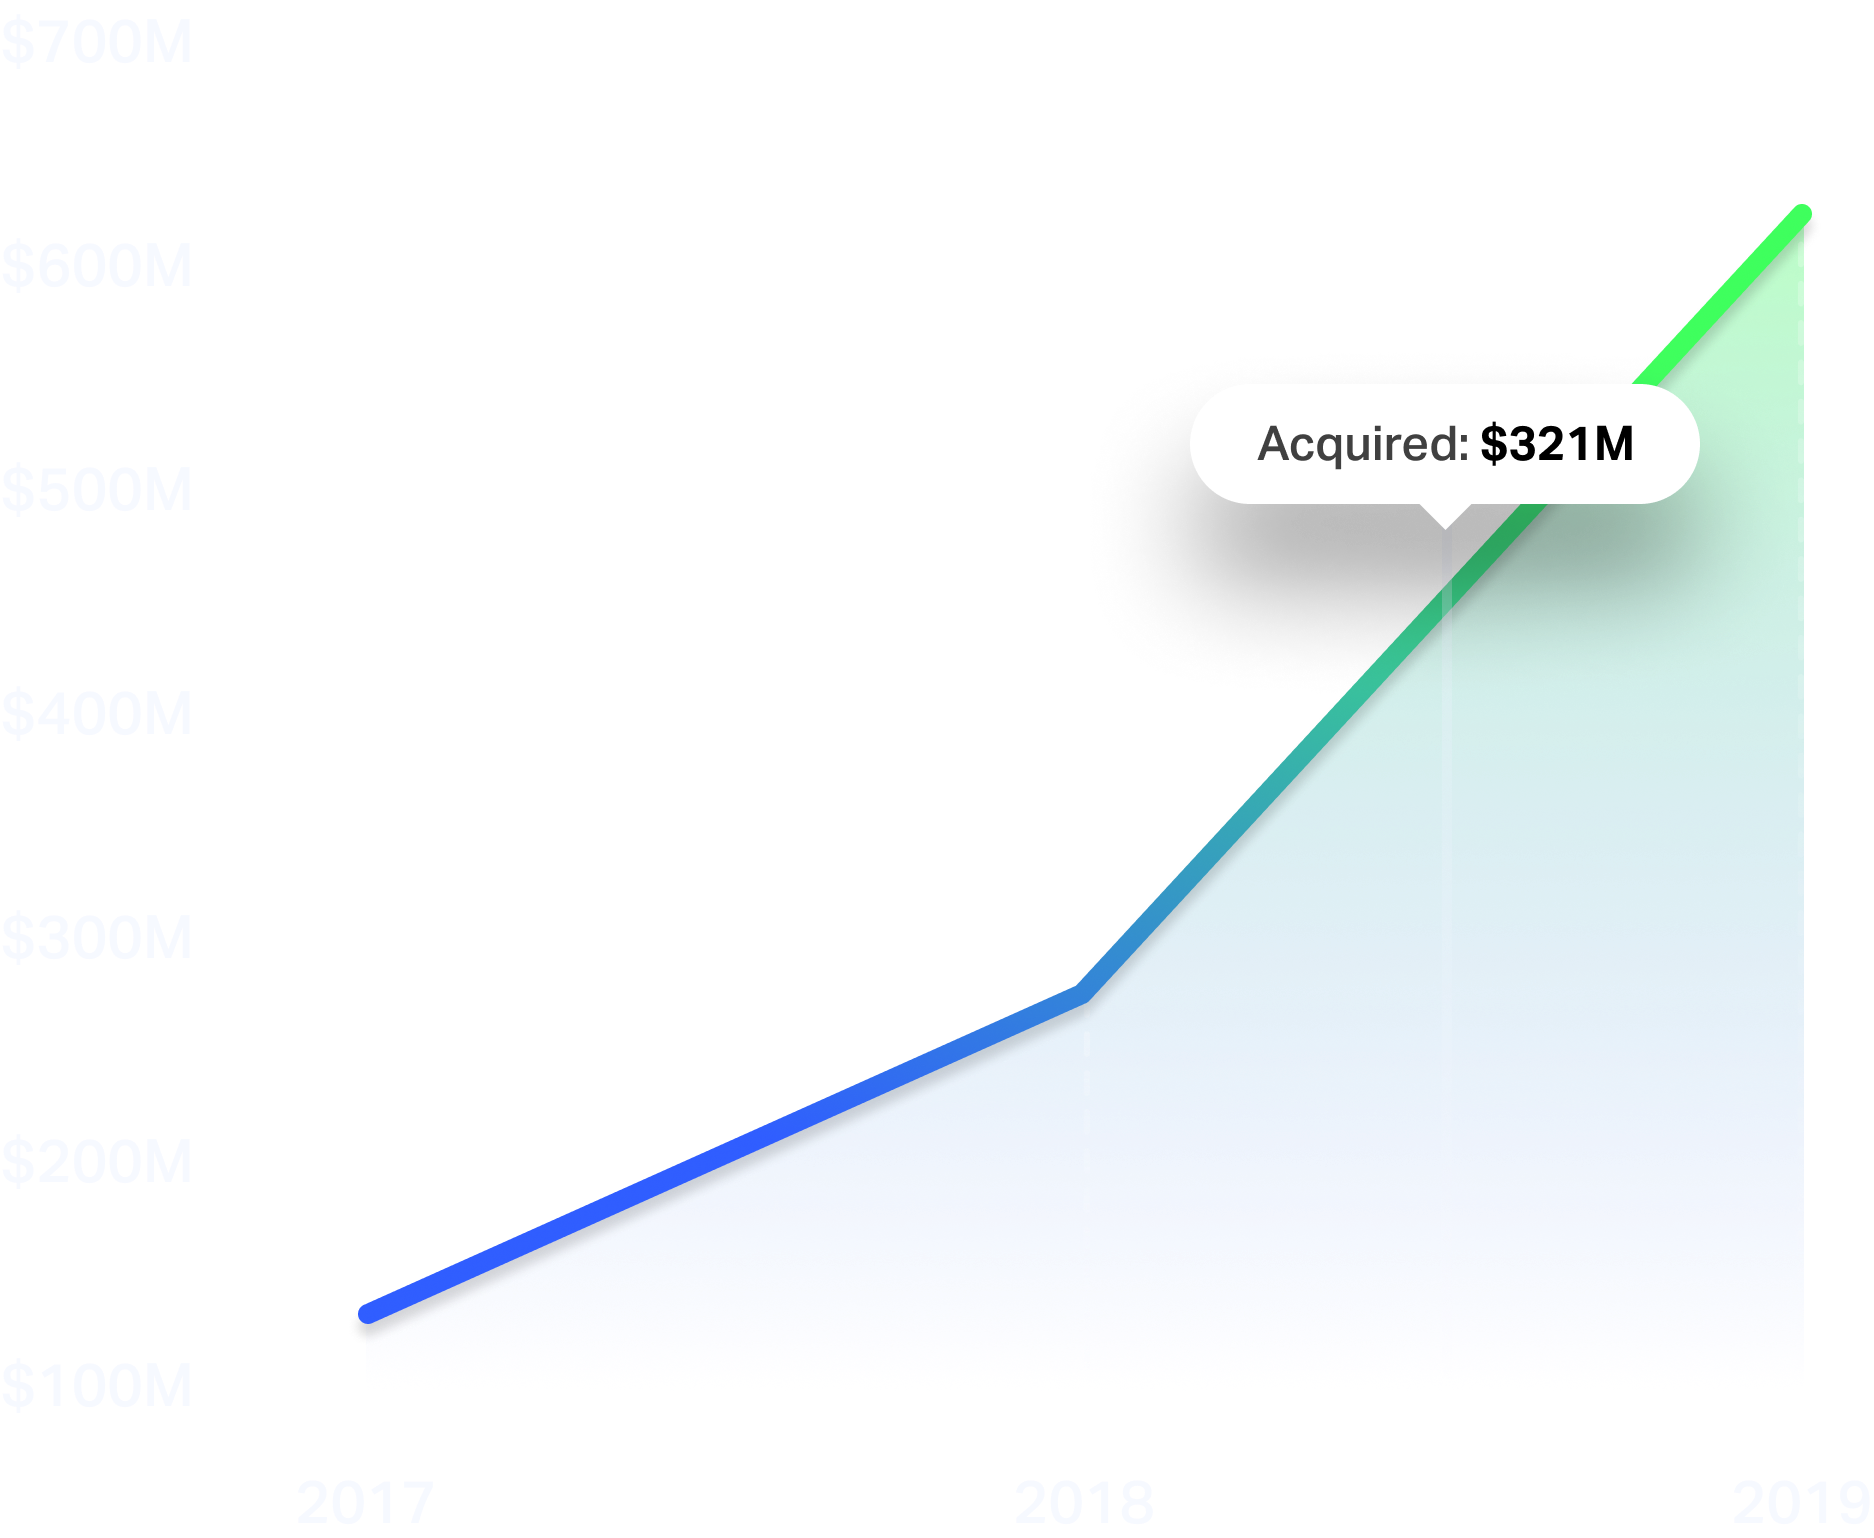 venue growth from 2017 to 2019